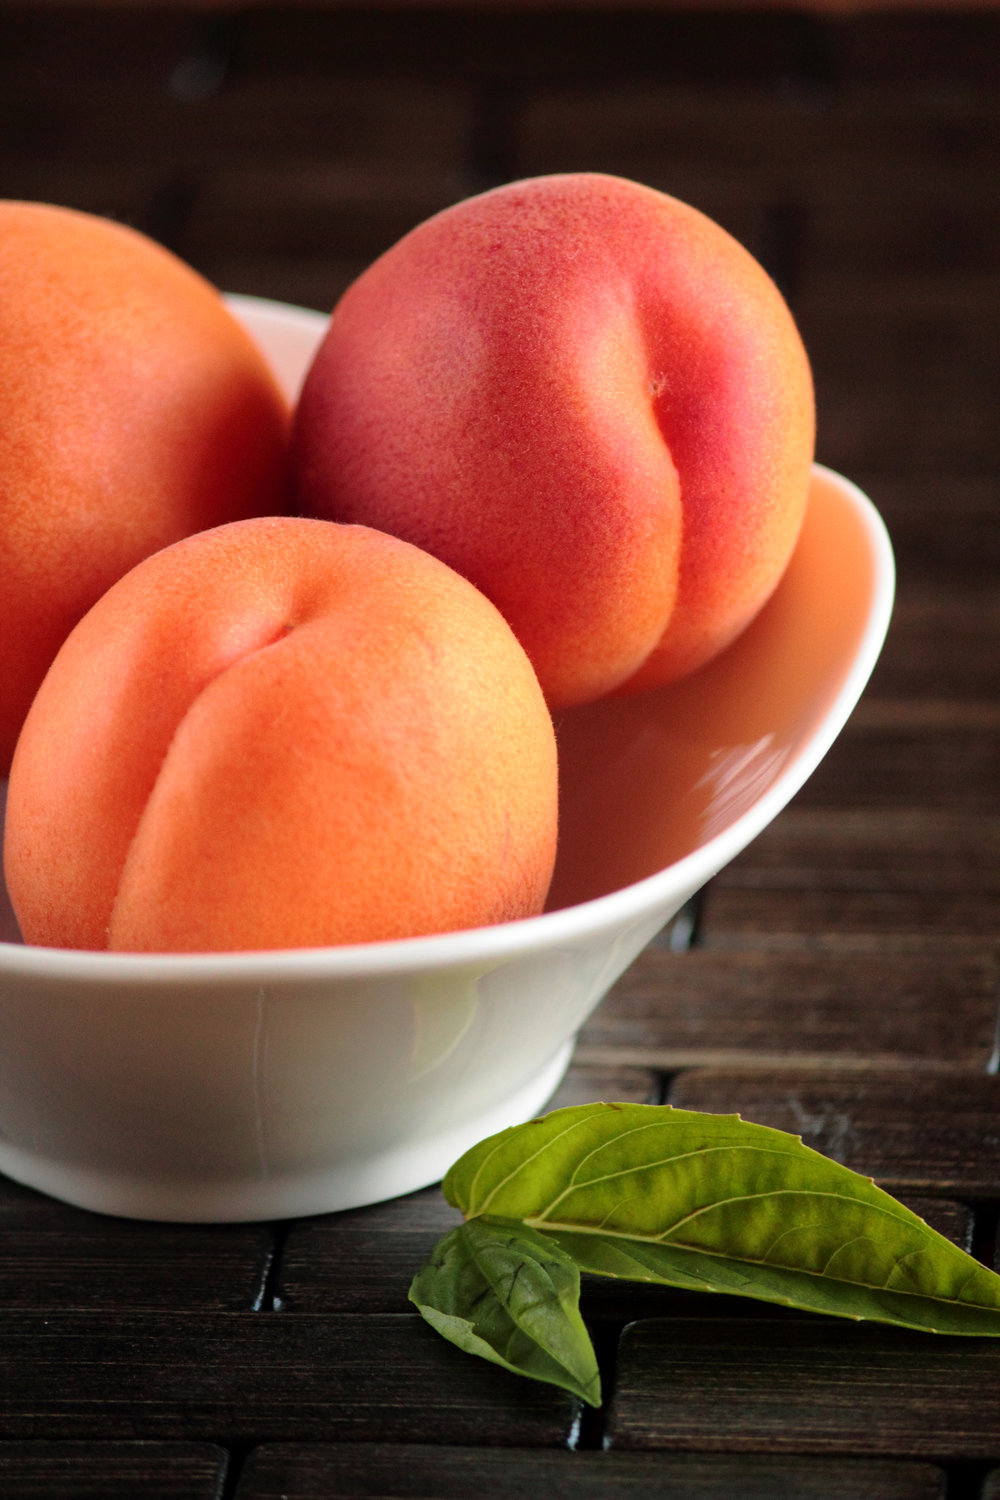 What dreams of apricots